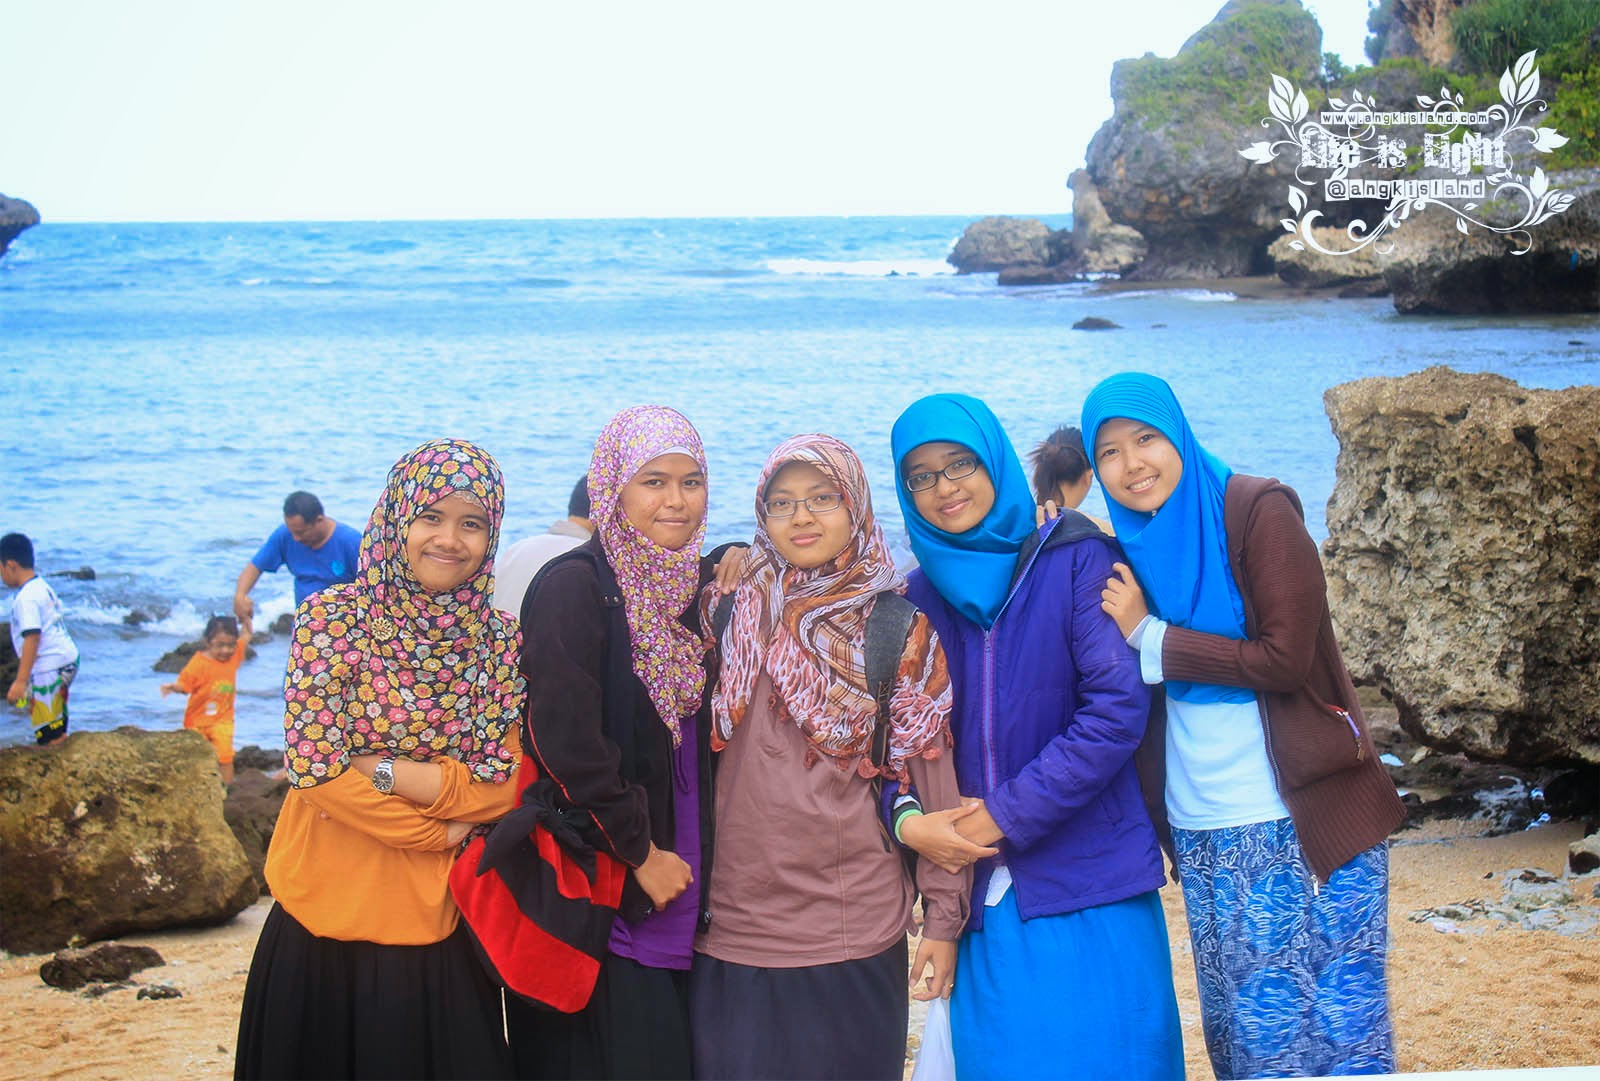 Having fun at pantai ngrenehan